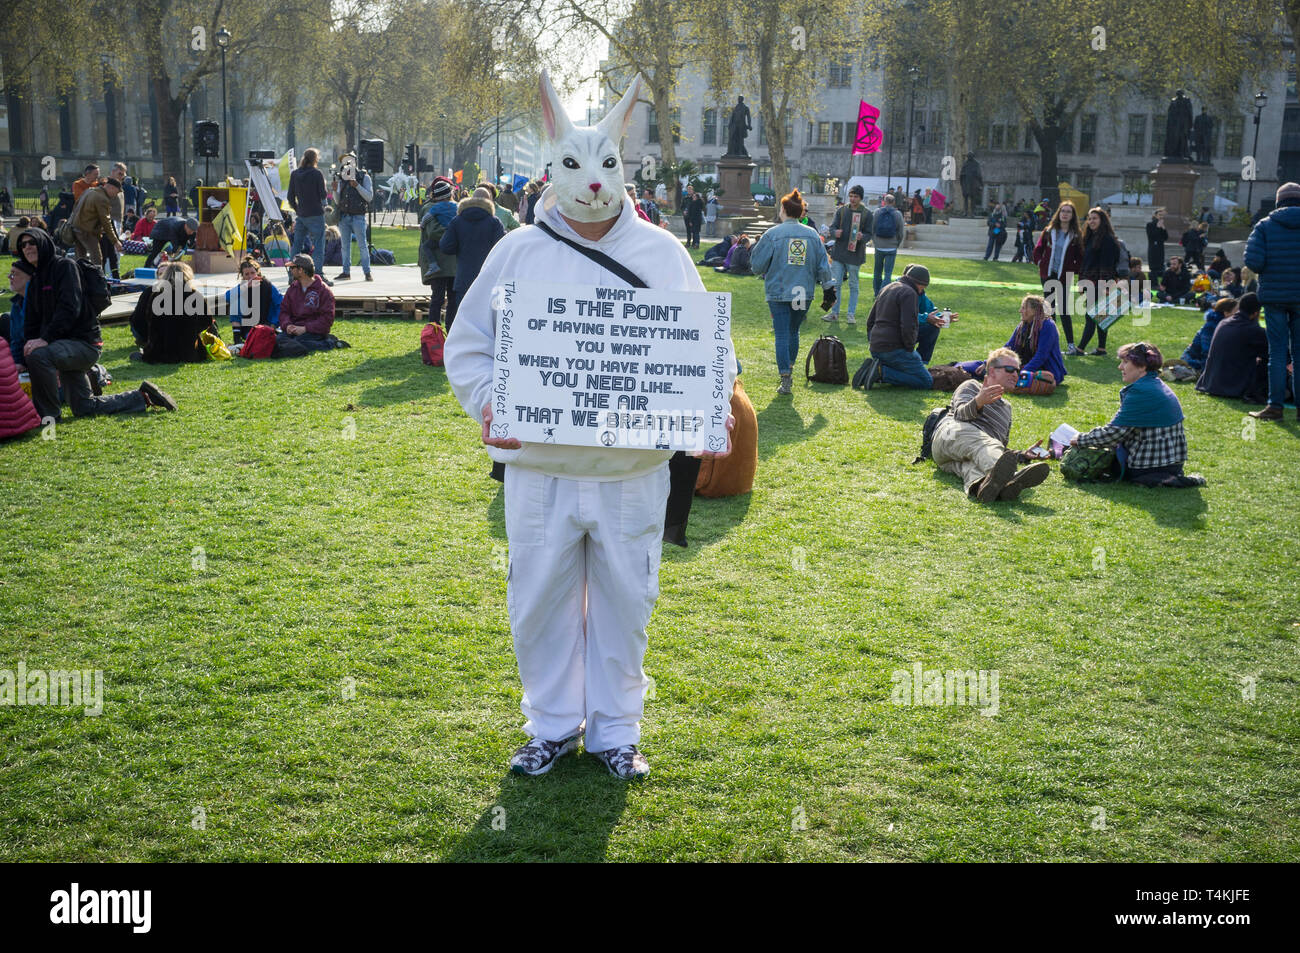 A protestor dressed as a White Rabbit on Parliament Green, Westminster for the Extinction Rebellion demonstration Stock Photo